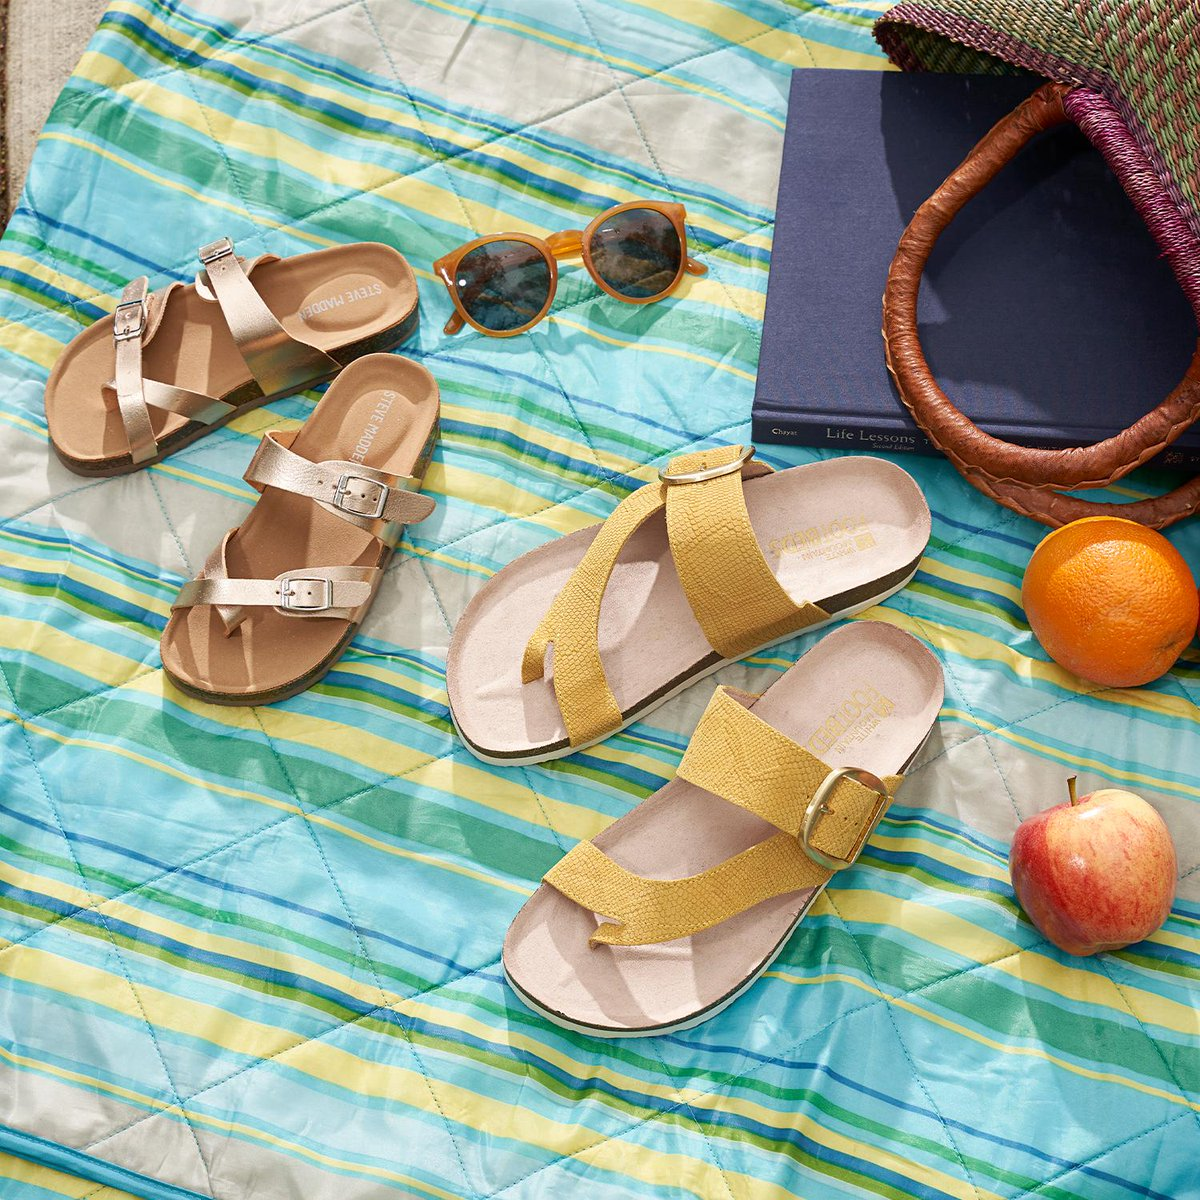 Cute & effortless sandals for wherever you and the kiddos are headed. https://t.co/coI27YmUHp